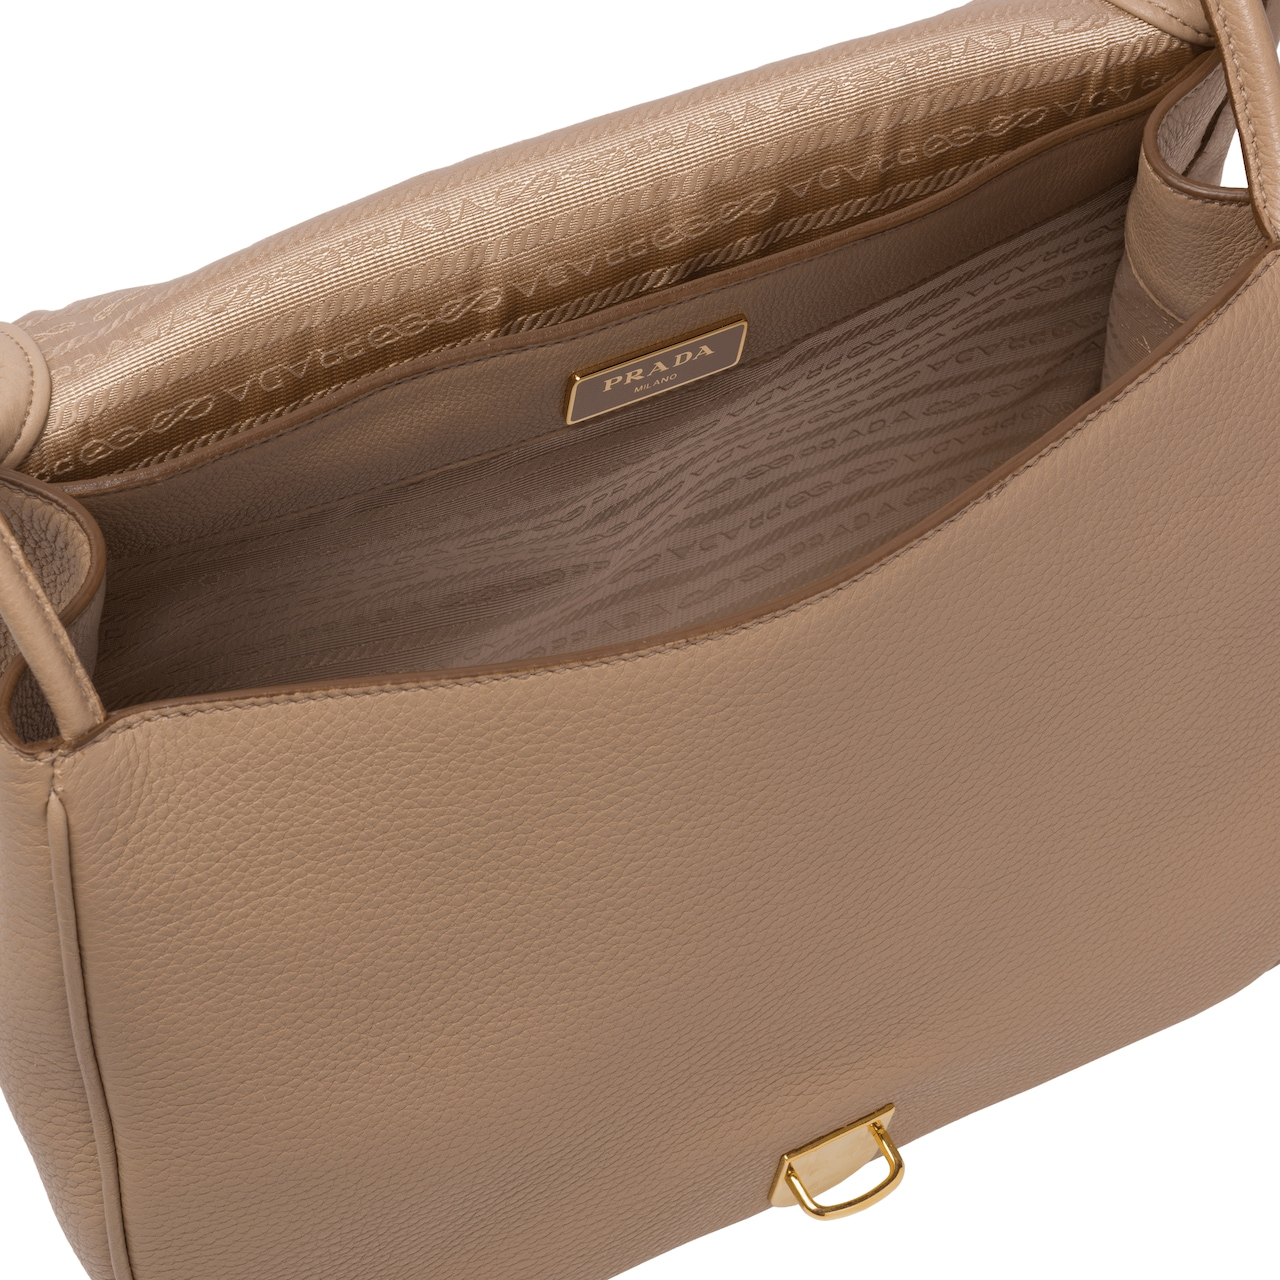 Calf leather shoulder bag